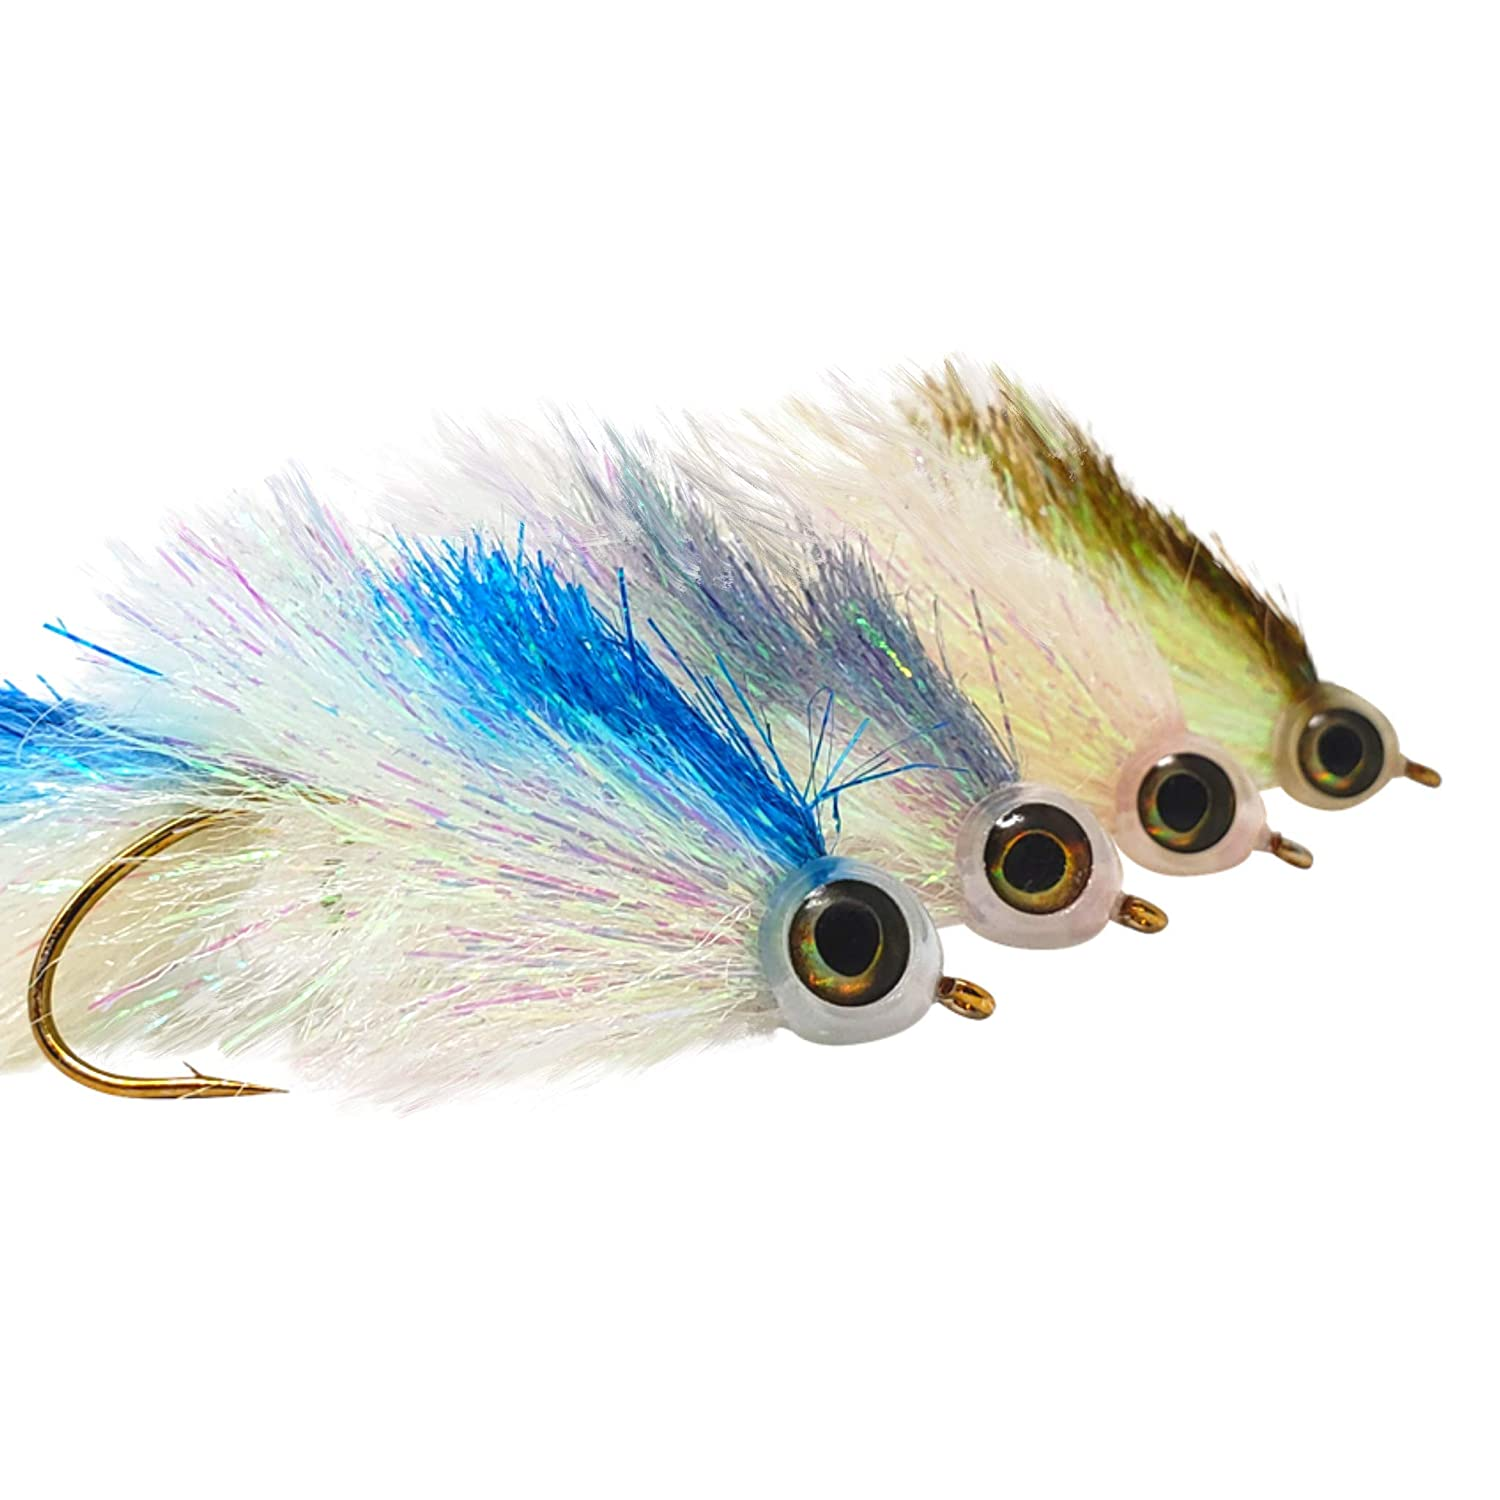 The Fly Crate Shimmering Minnow Articulated Streamer Assortment Size 2 Fly Fishing for Trout Bass Pike 4 Flies